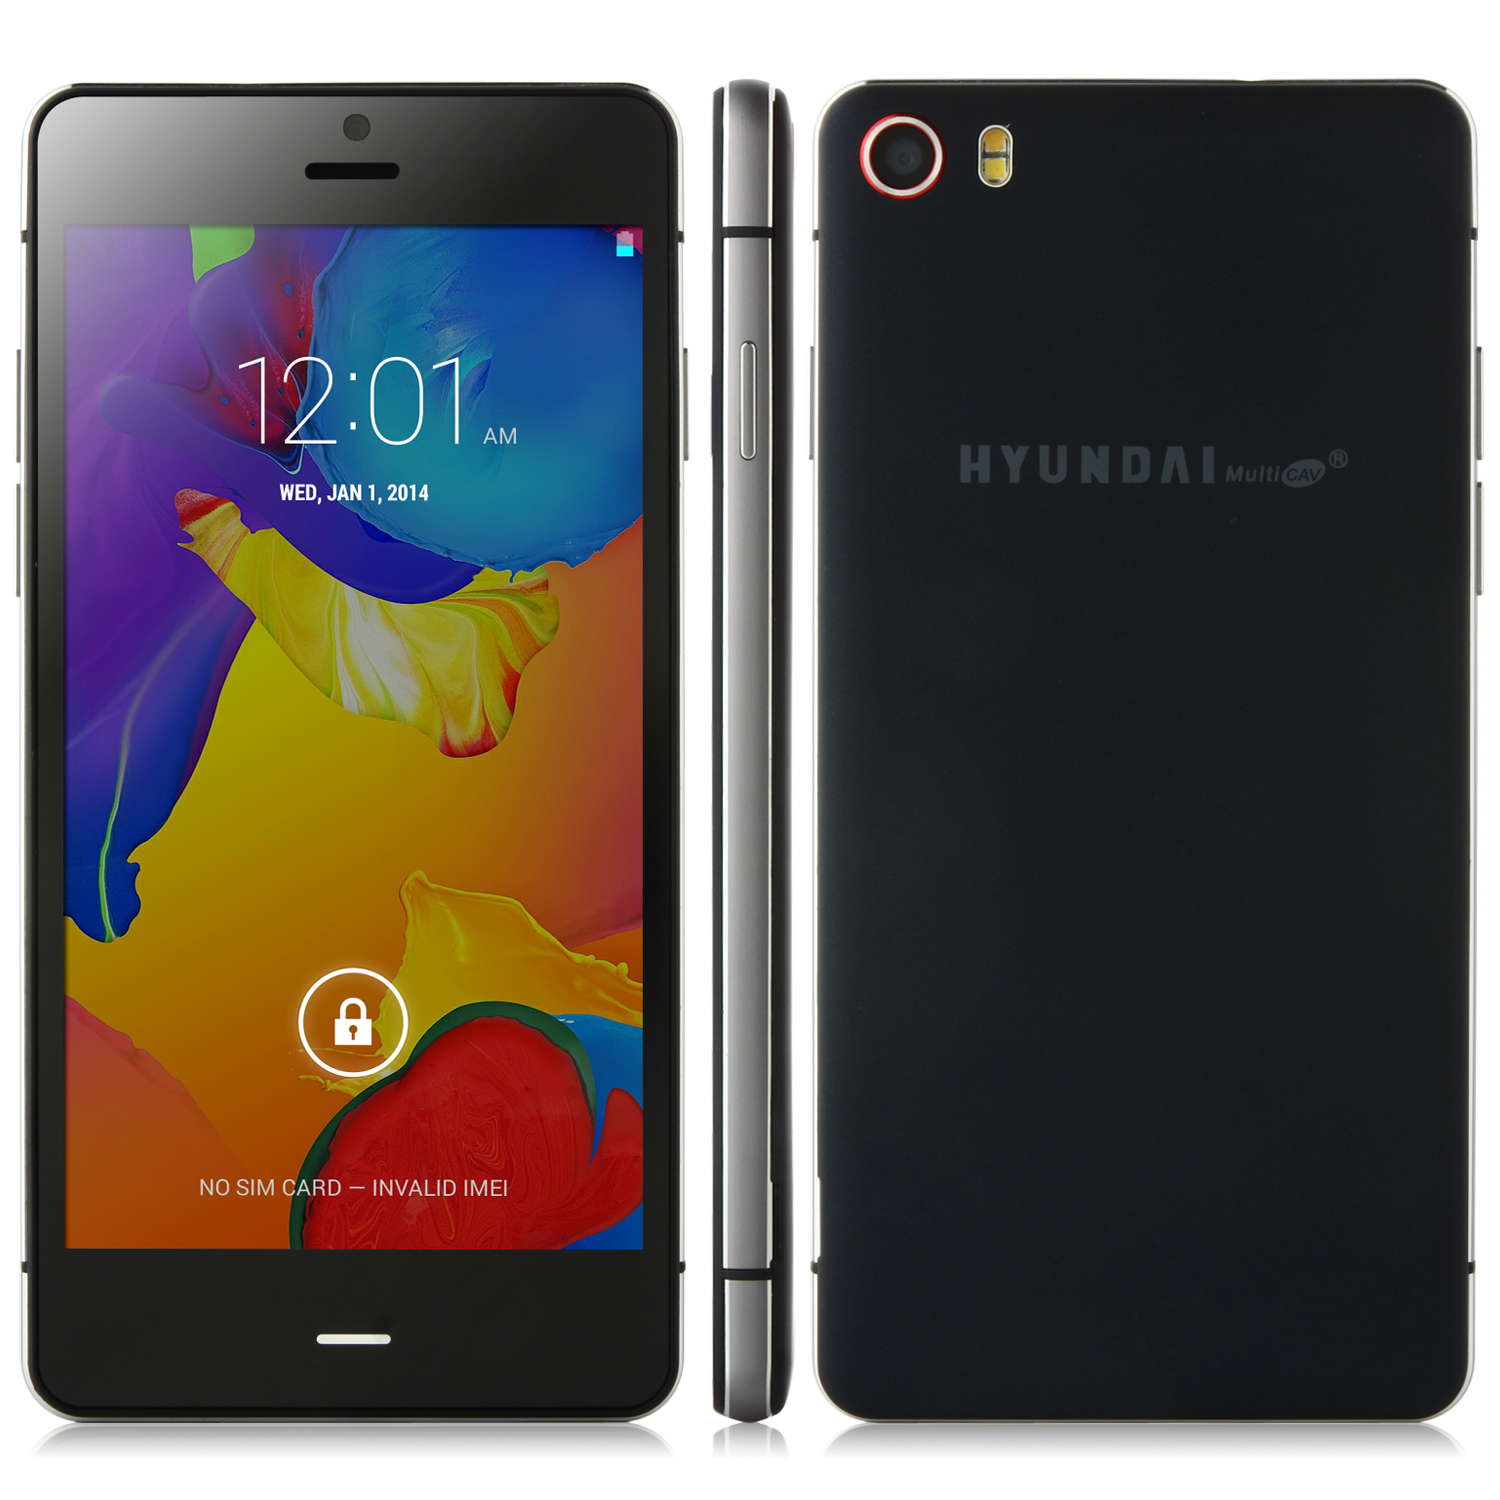 HYUNDAI Q5 Smartphone Android 4.4 MTK6582 Quad Core 5.0 Inch HD Screen Black